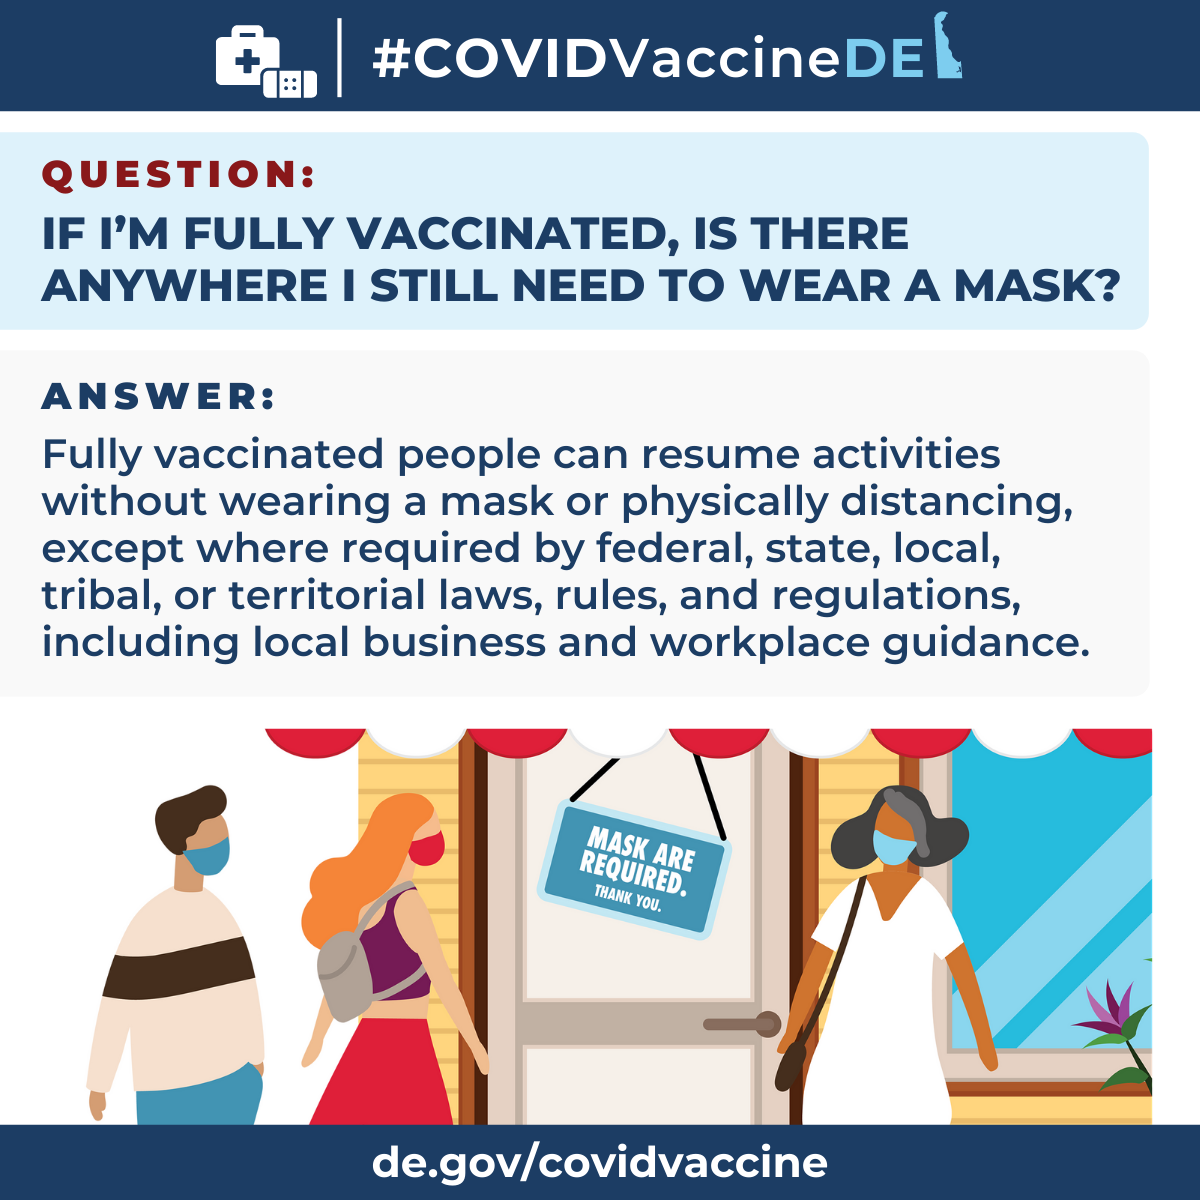 CDC guidelines for vaccinated individuals